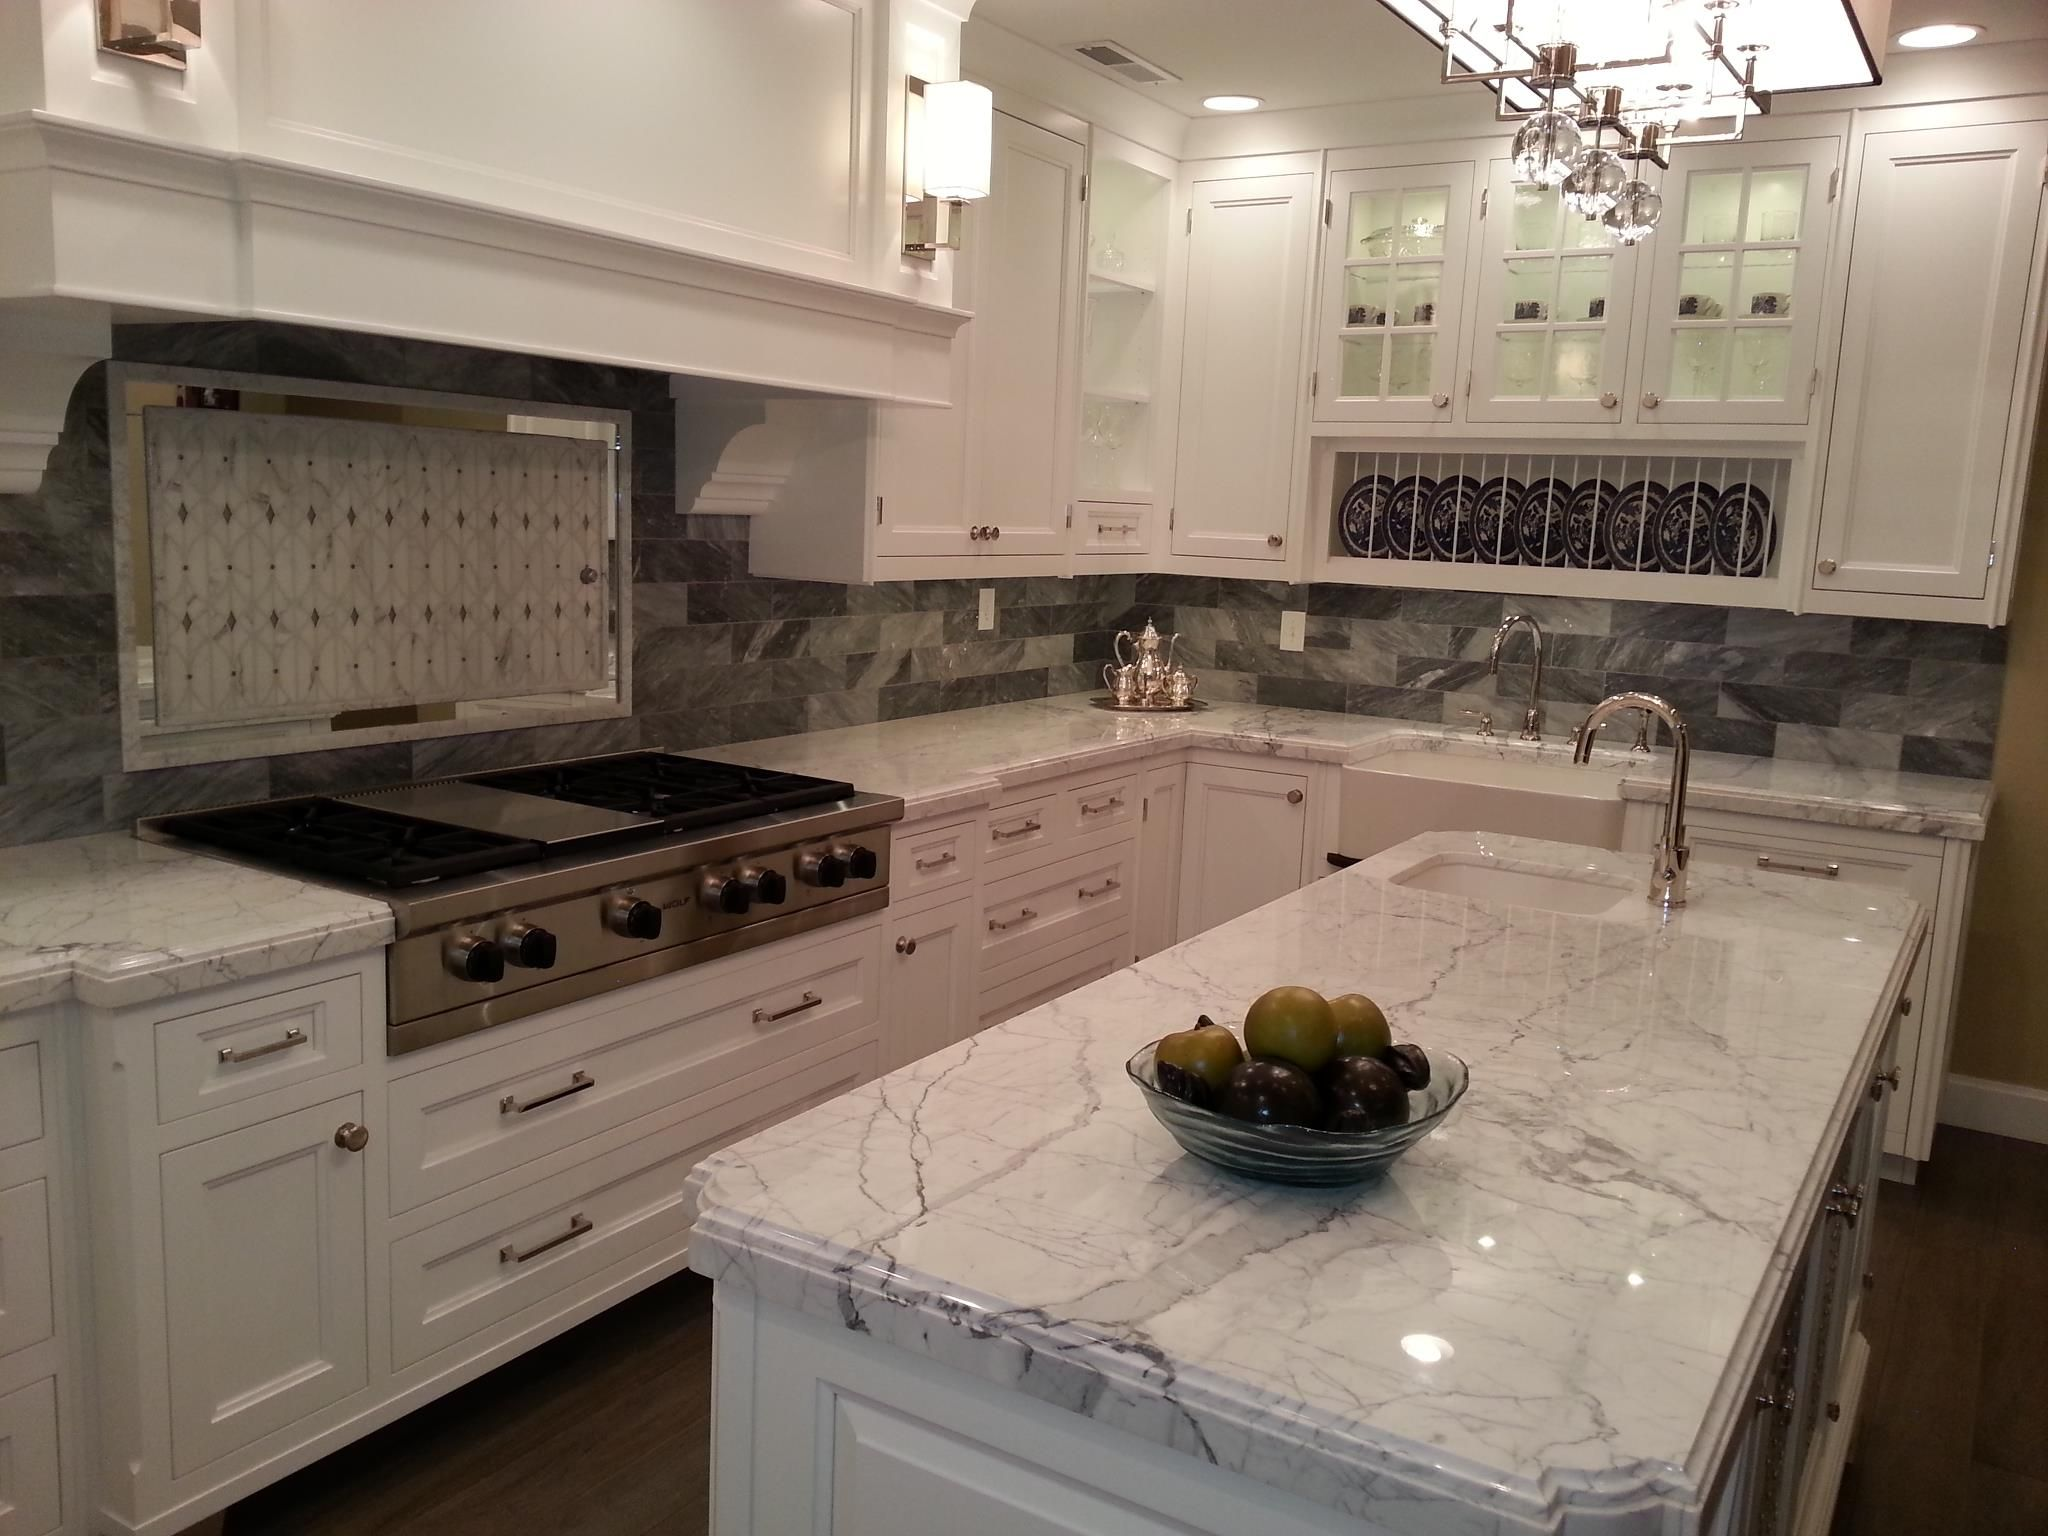 Kitchen Granite On Kitchen Glacier White Granite Kitchen Counters .bathrooms Granite